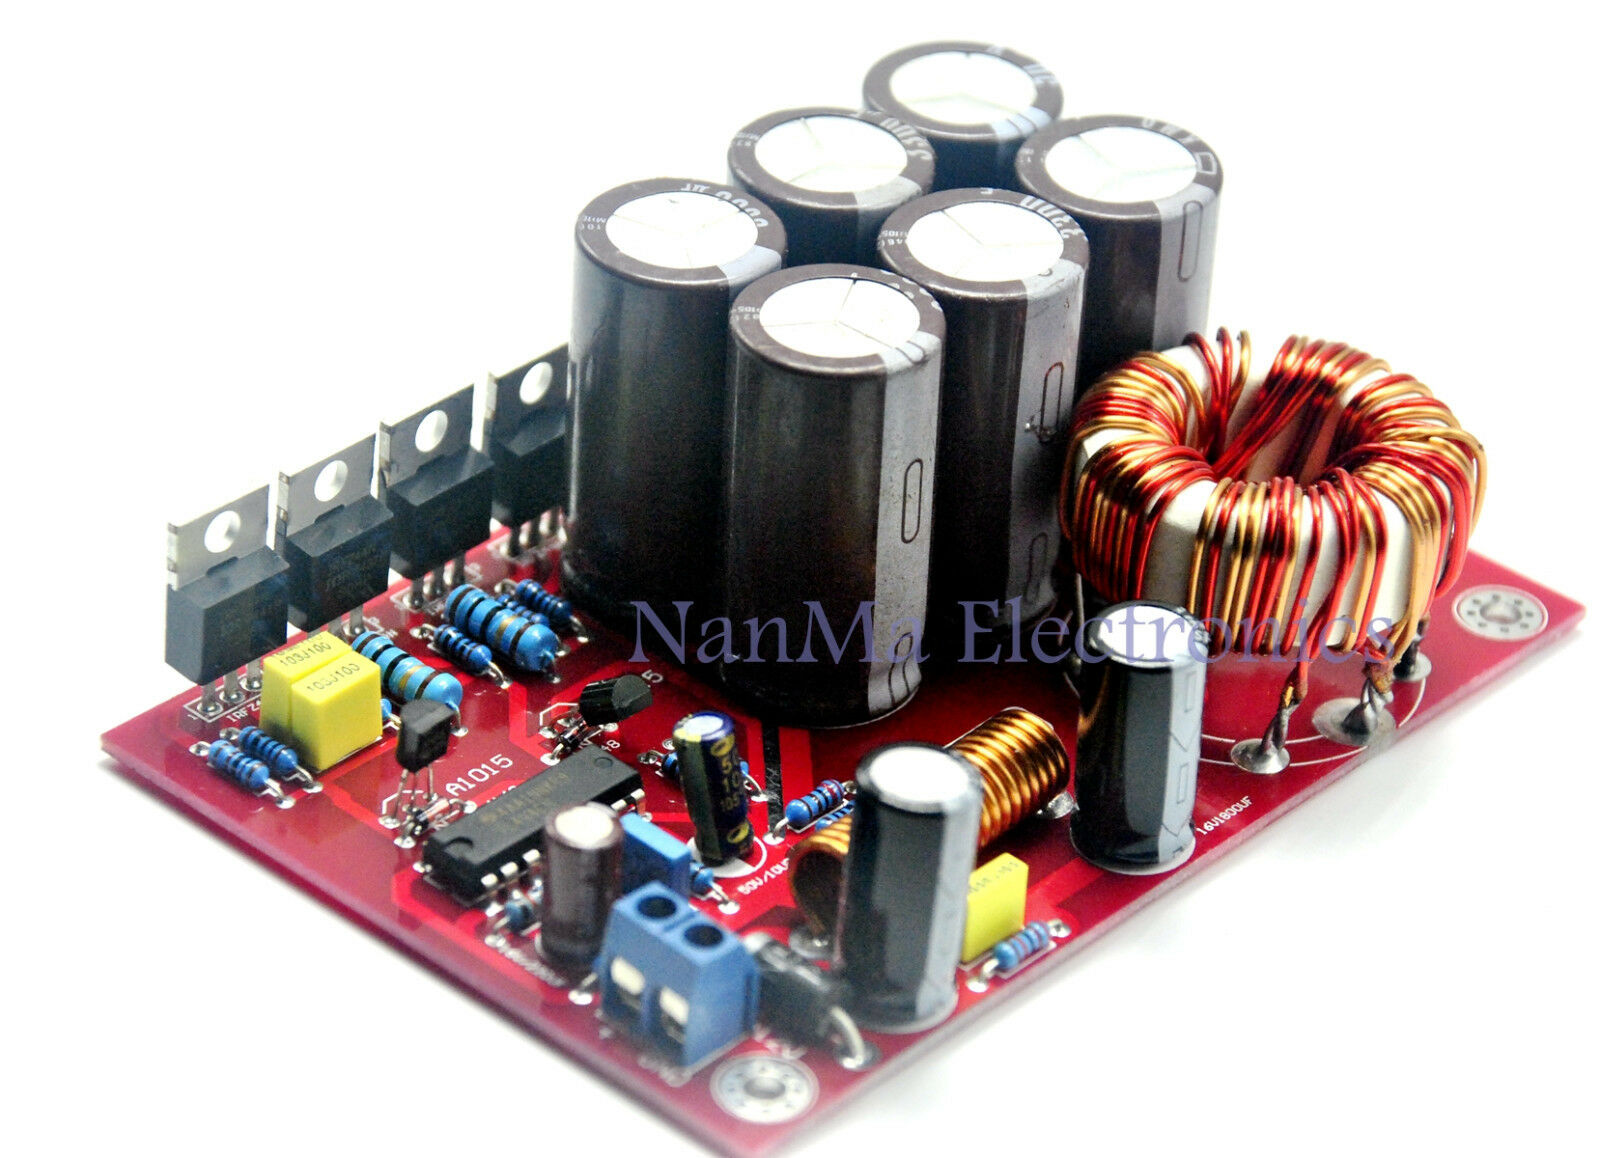 Tda 7294 Extra Jasapembuatanwebsite Irfz44n Electronic Components Integrated Circuit Transistor Stk Switching Boost Power Supply Board Auto Amp For Tda7294 Dc12v To Dc32v 180w New